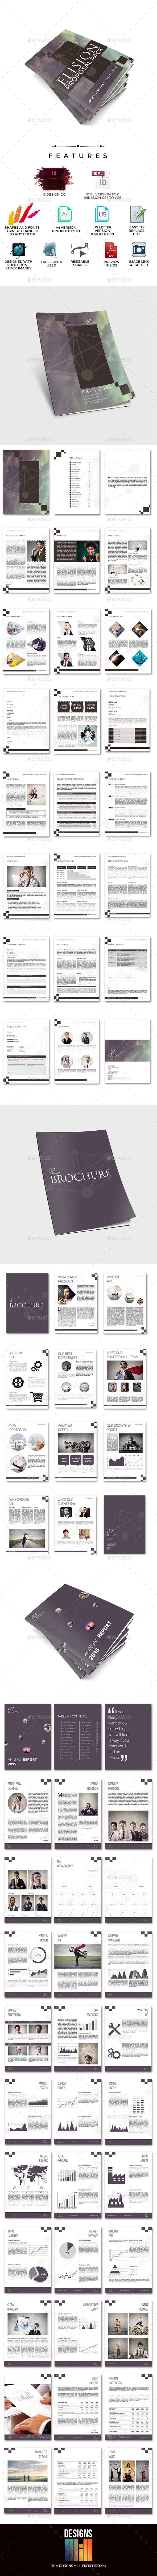 GraphicRiver Elision Indesign Multi Business Proposals Bundle 9582580